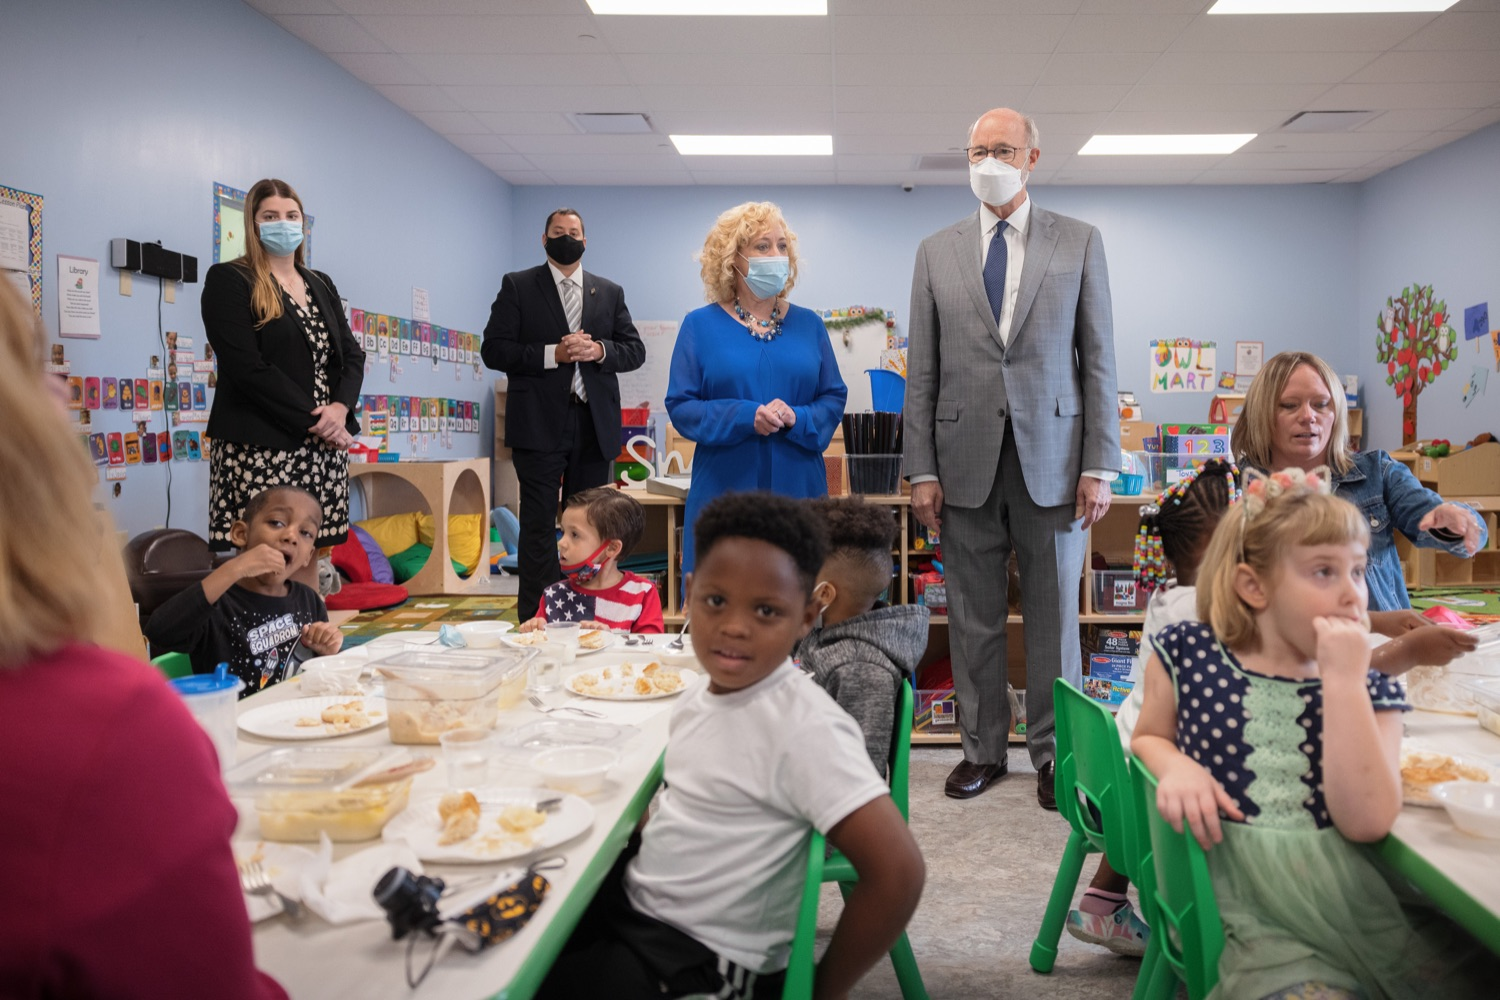 """<a href=""""https://filesource.wostreaming.net/commonwealthofpa/photo/20139_gov_childcare_dz_030.jpg"""" target=""""_blank"""">⇣Download Photo<br></a>Pennsylvania Governor Tom Wolf and Rina Irwin, CEO, Child Development Centers taking a tour of the Gilson Child Development Center.  Governor Tom Wolf today visited Gilson Child Development Center in Erie to celebrate the $30 million increase in state funding to expand early childhood learning to more than 3,200 additional young children and the $655 million available in federal funding to stabilize childcare providers during the pandemic.  Erie, PA  October 12, 2021"""